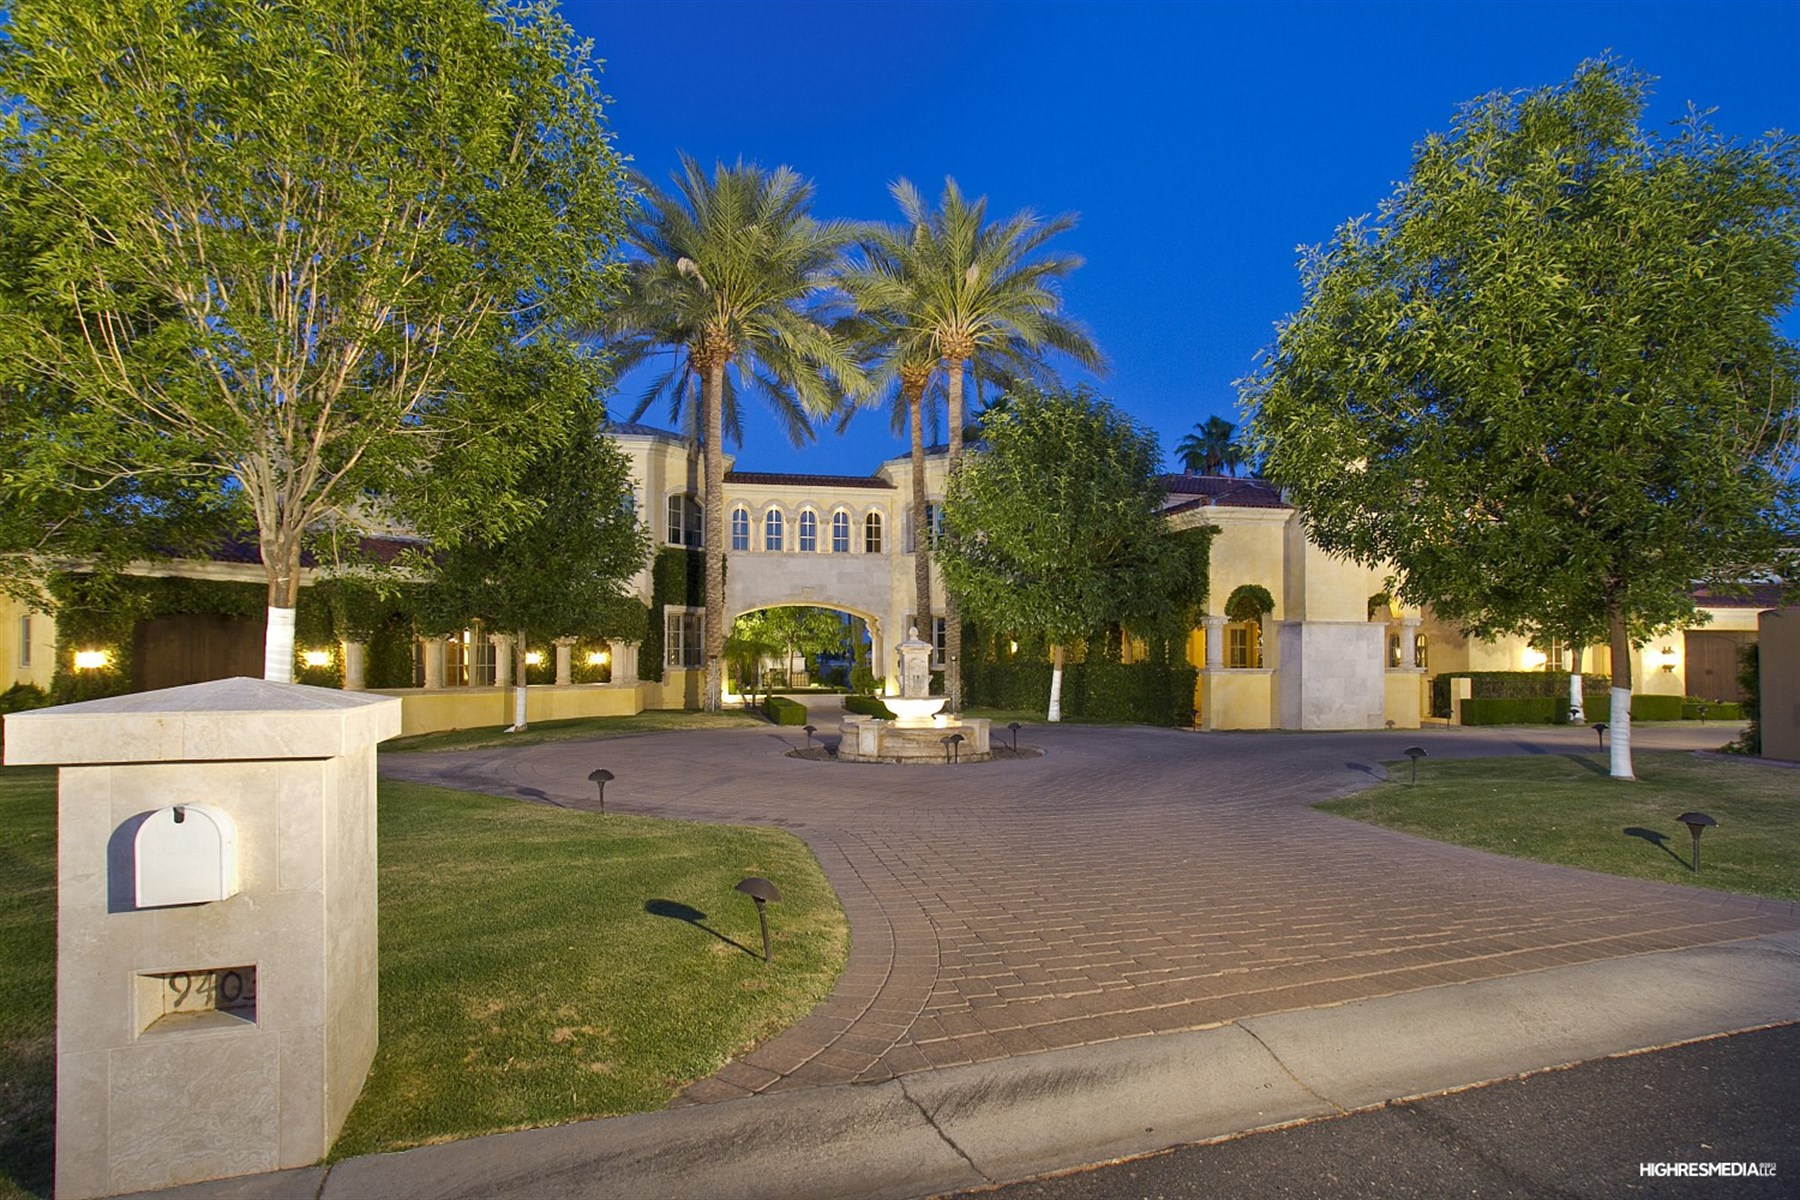 Moradia para Venda às Classic Mediterranean Design Grand Estate on the golf course. 9403 N 55 ST Paradise Valley, Arizona, 85253 Estados Unidos